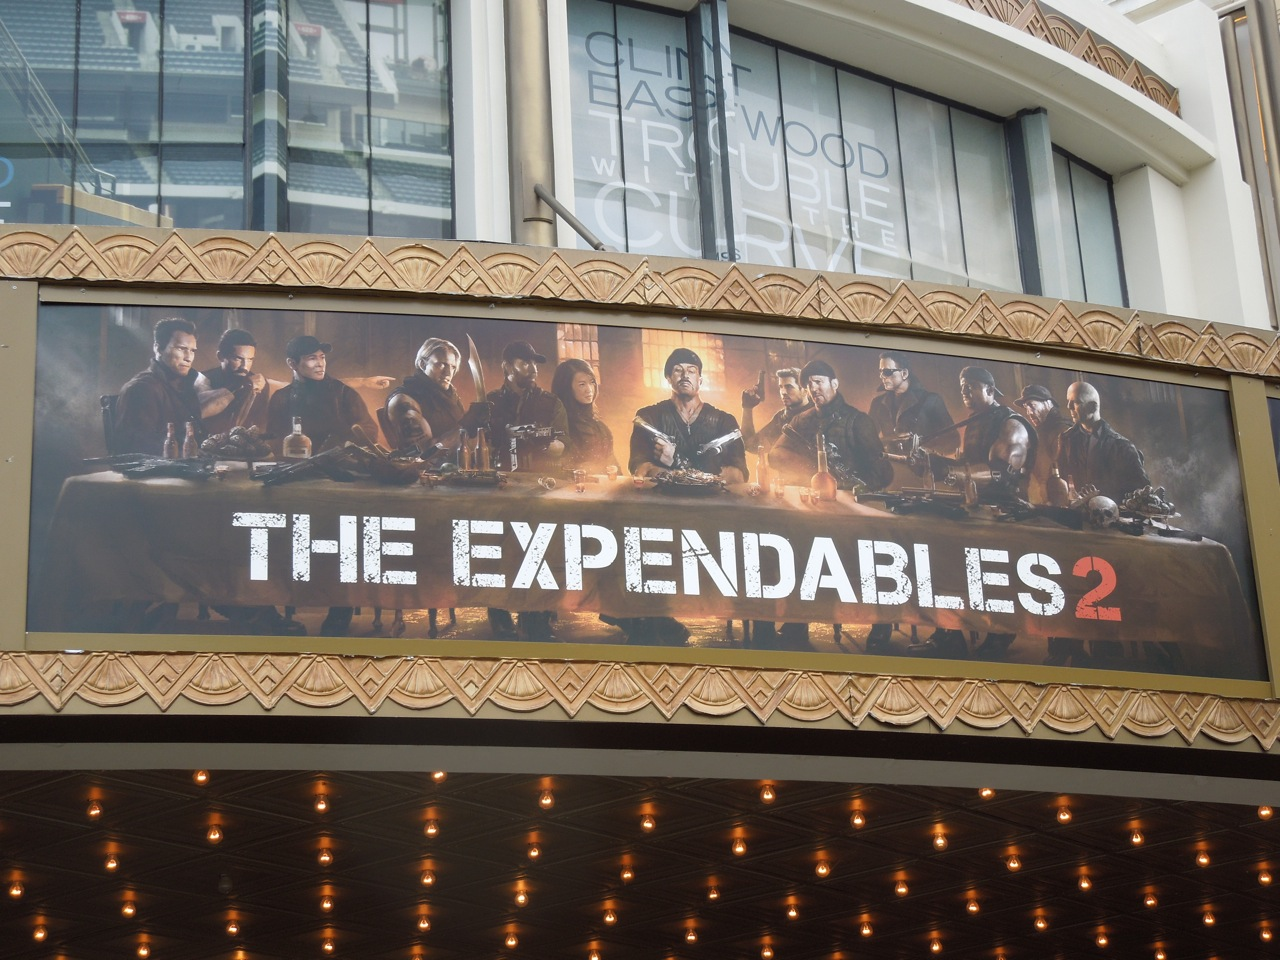 Expendables 2 Last Supper   expendables 2 the last supper ...